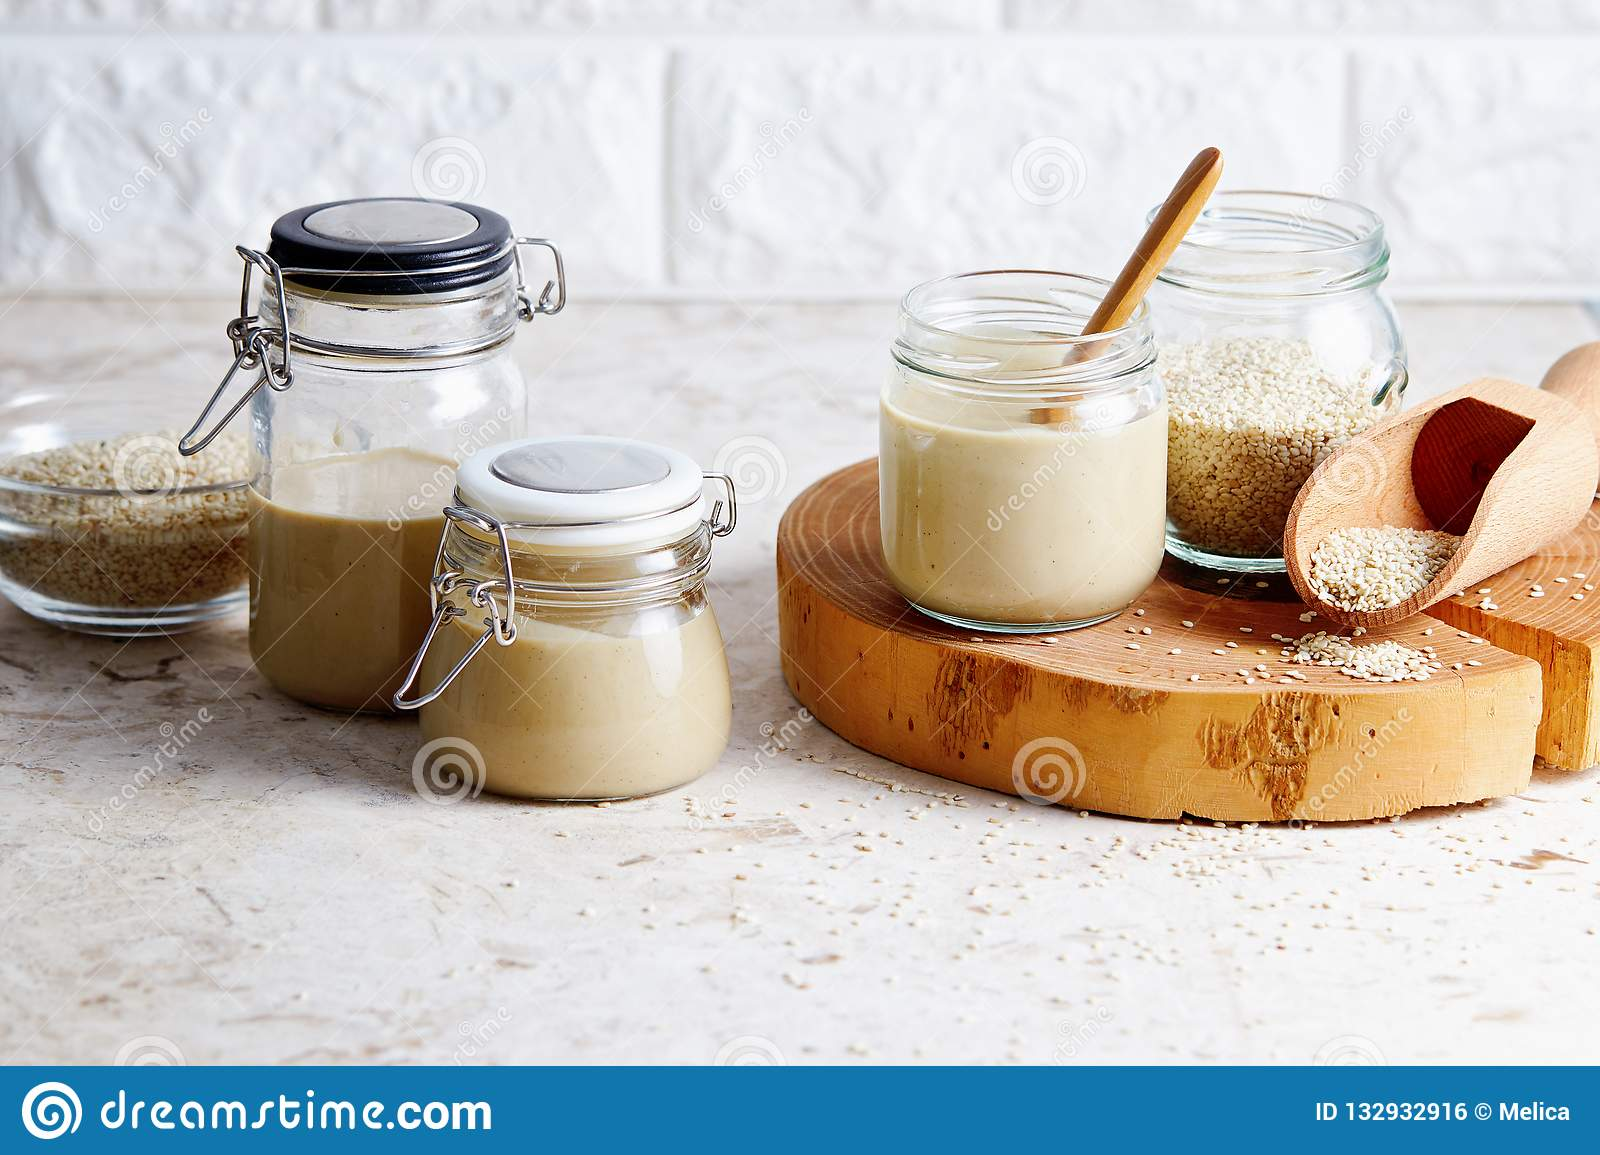 Homemade tahini in glass jars